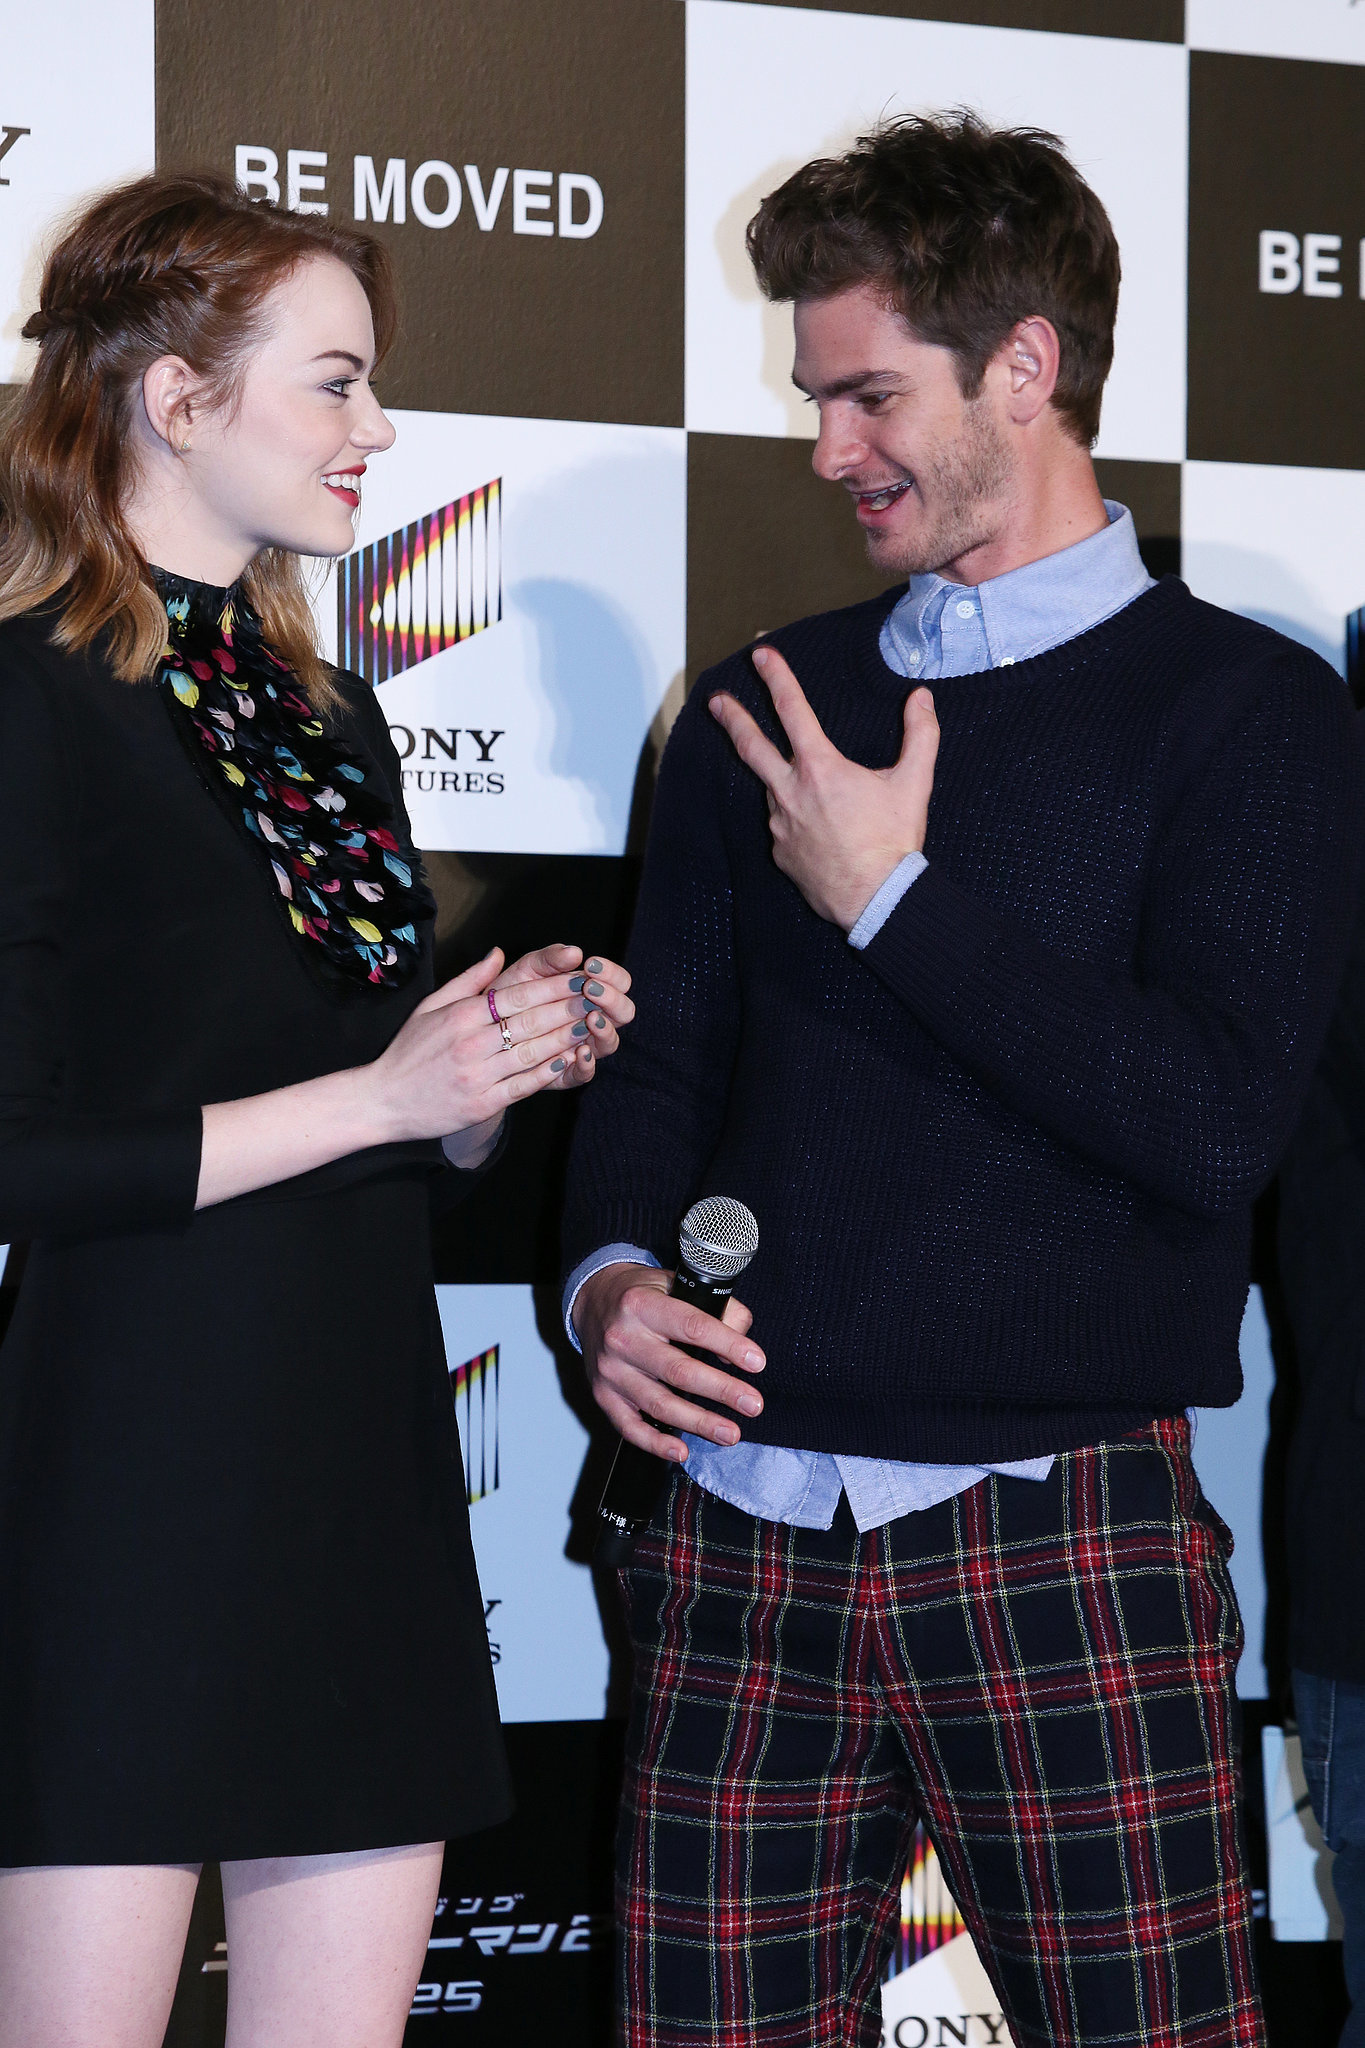 Andrew and Emma Get Caught in a Web of Cuteness With Fans